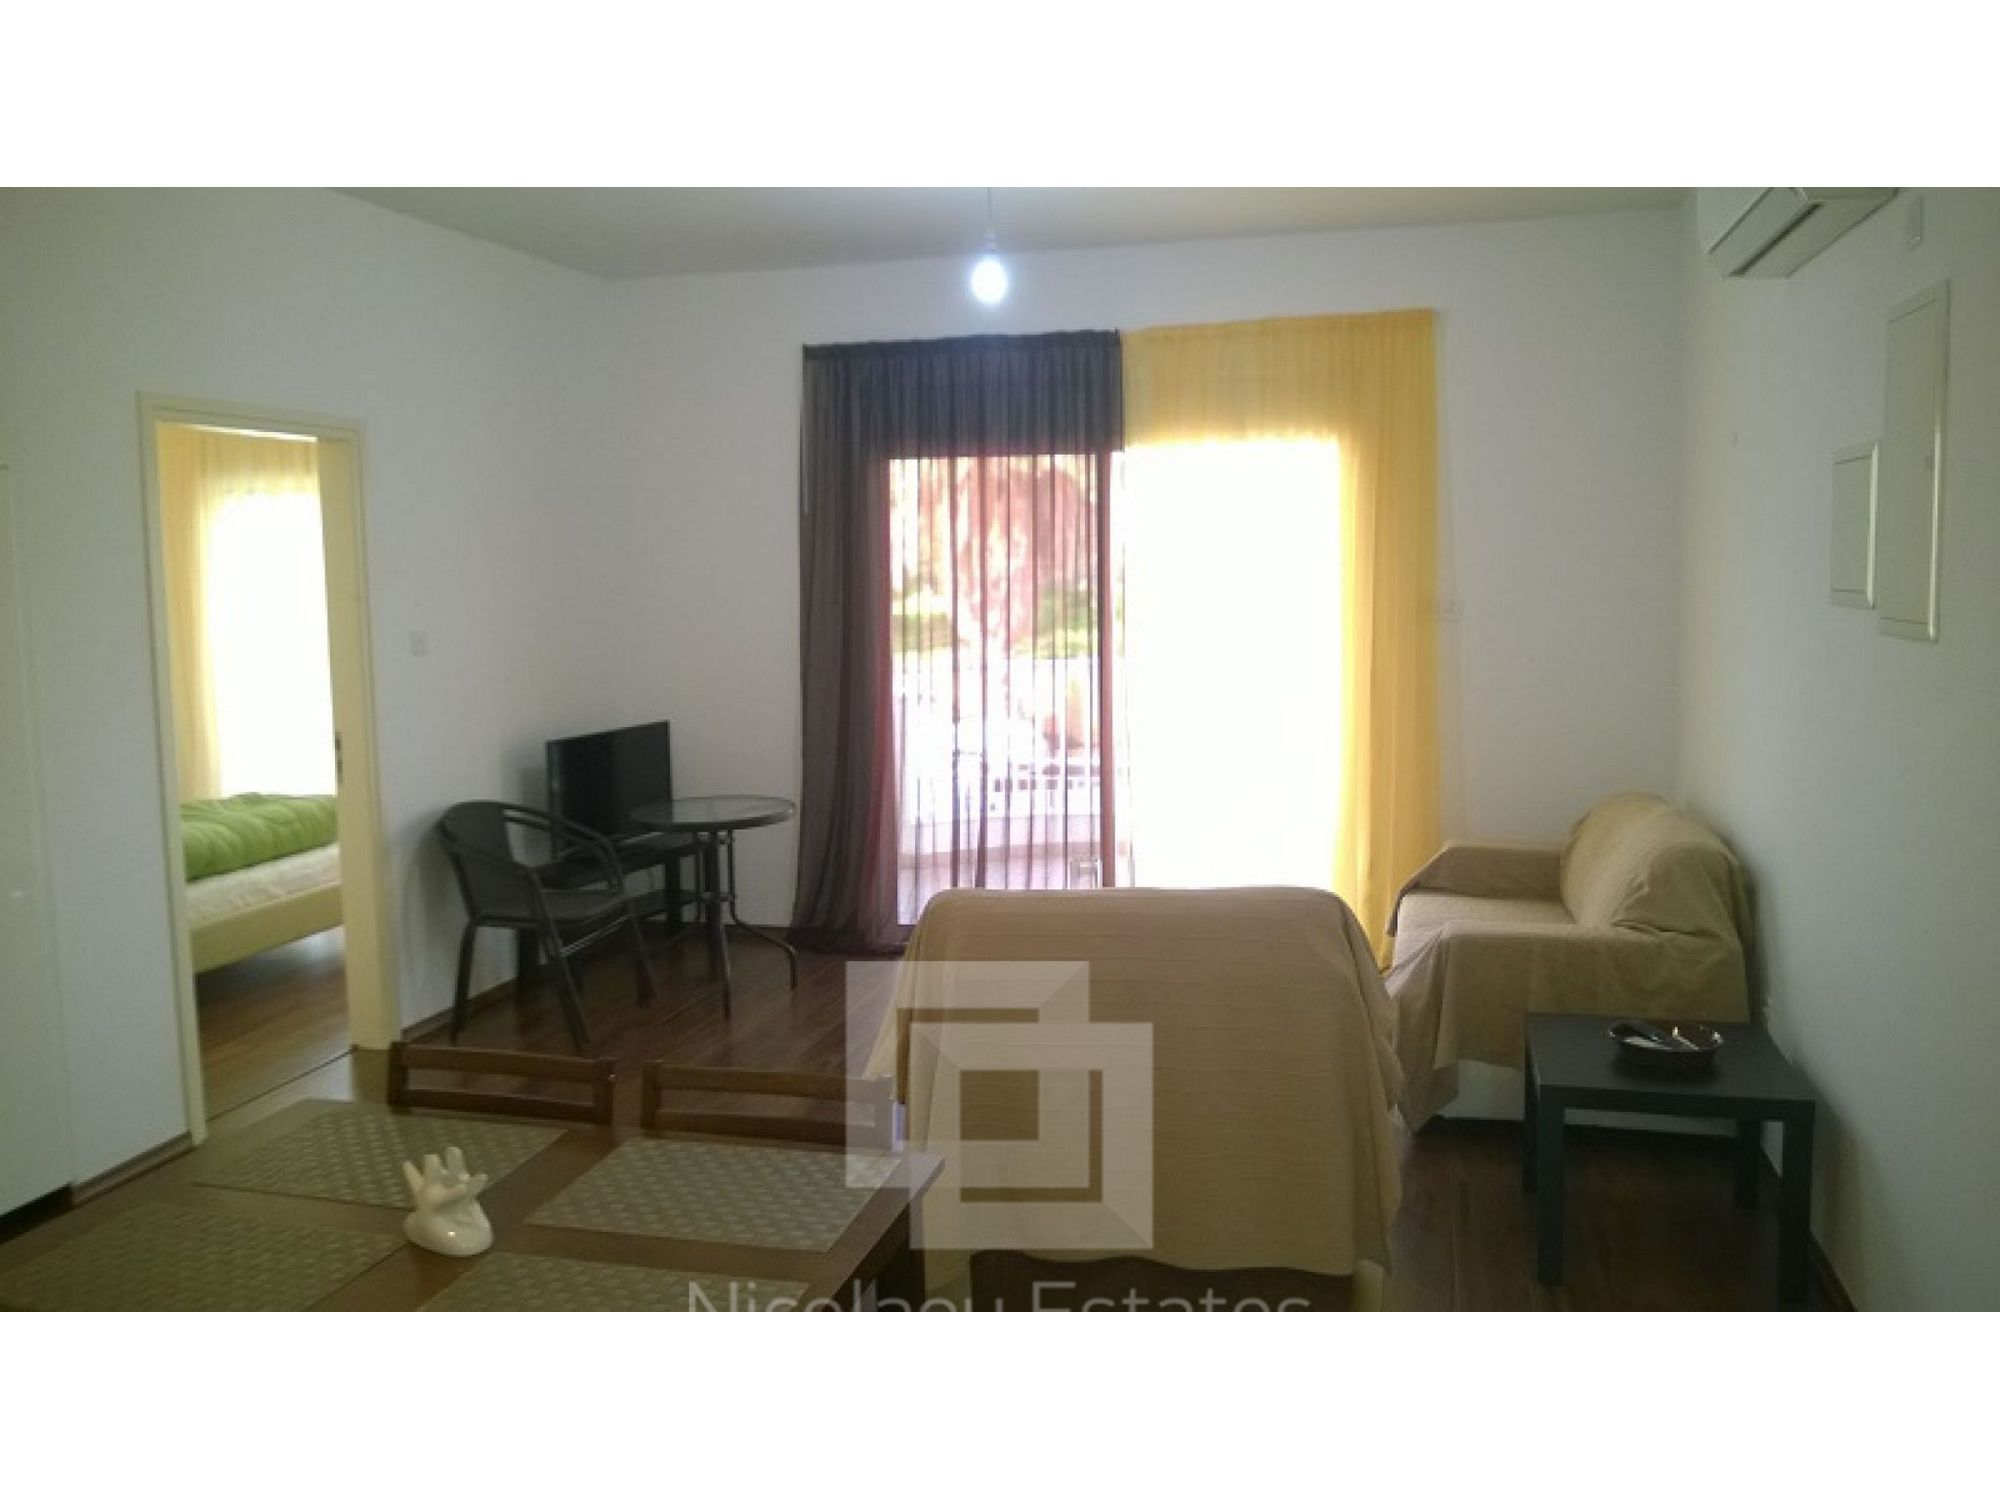 Archived One Bedroom Fully Furnished Apartment For Rent In Germasogia Eur 580